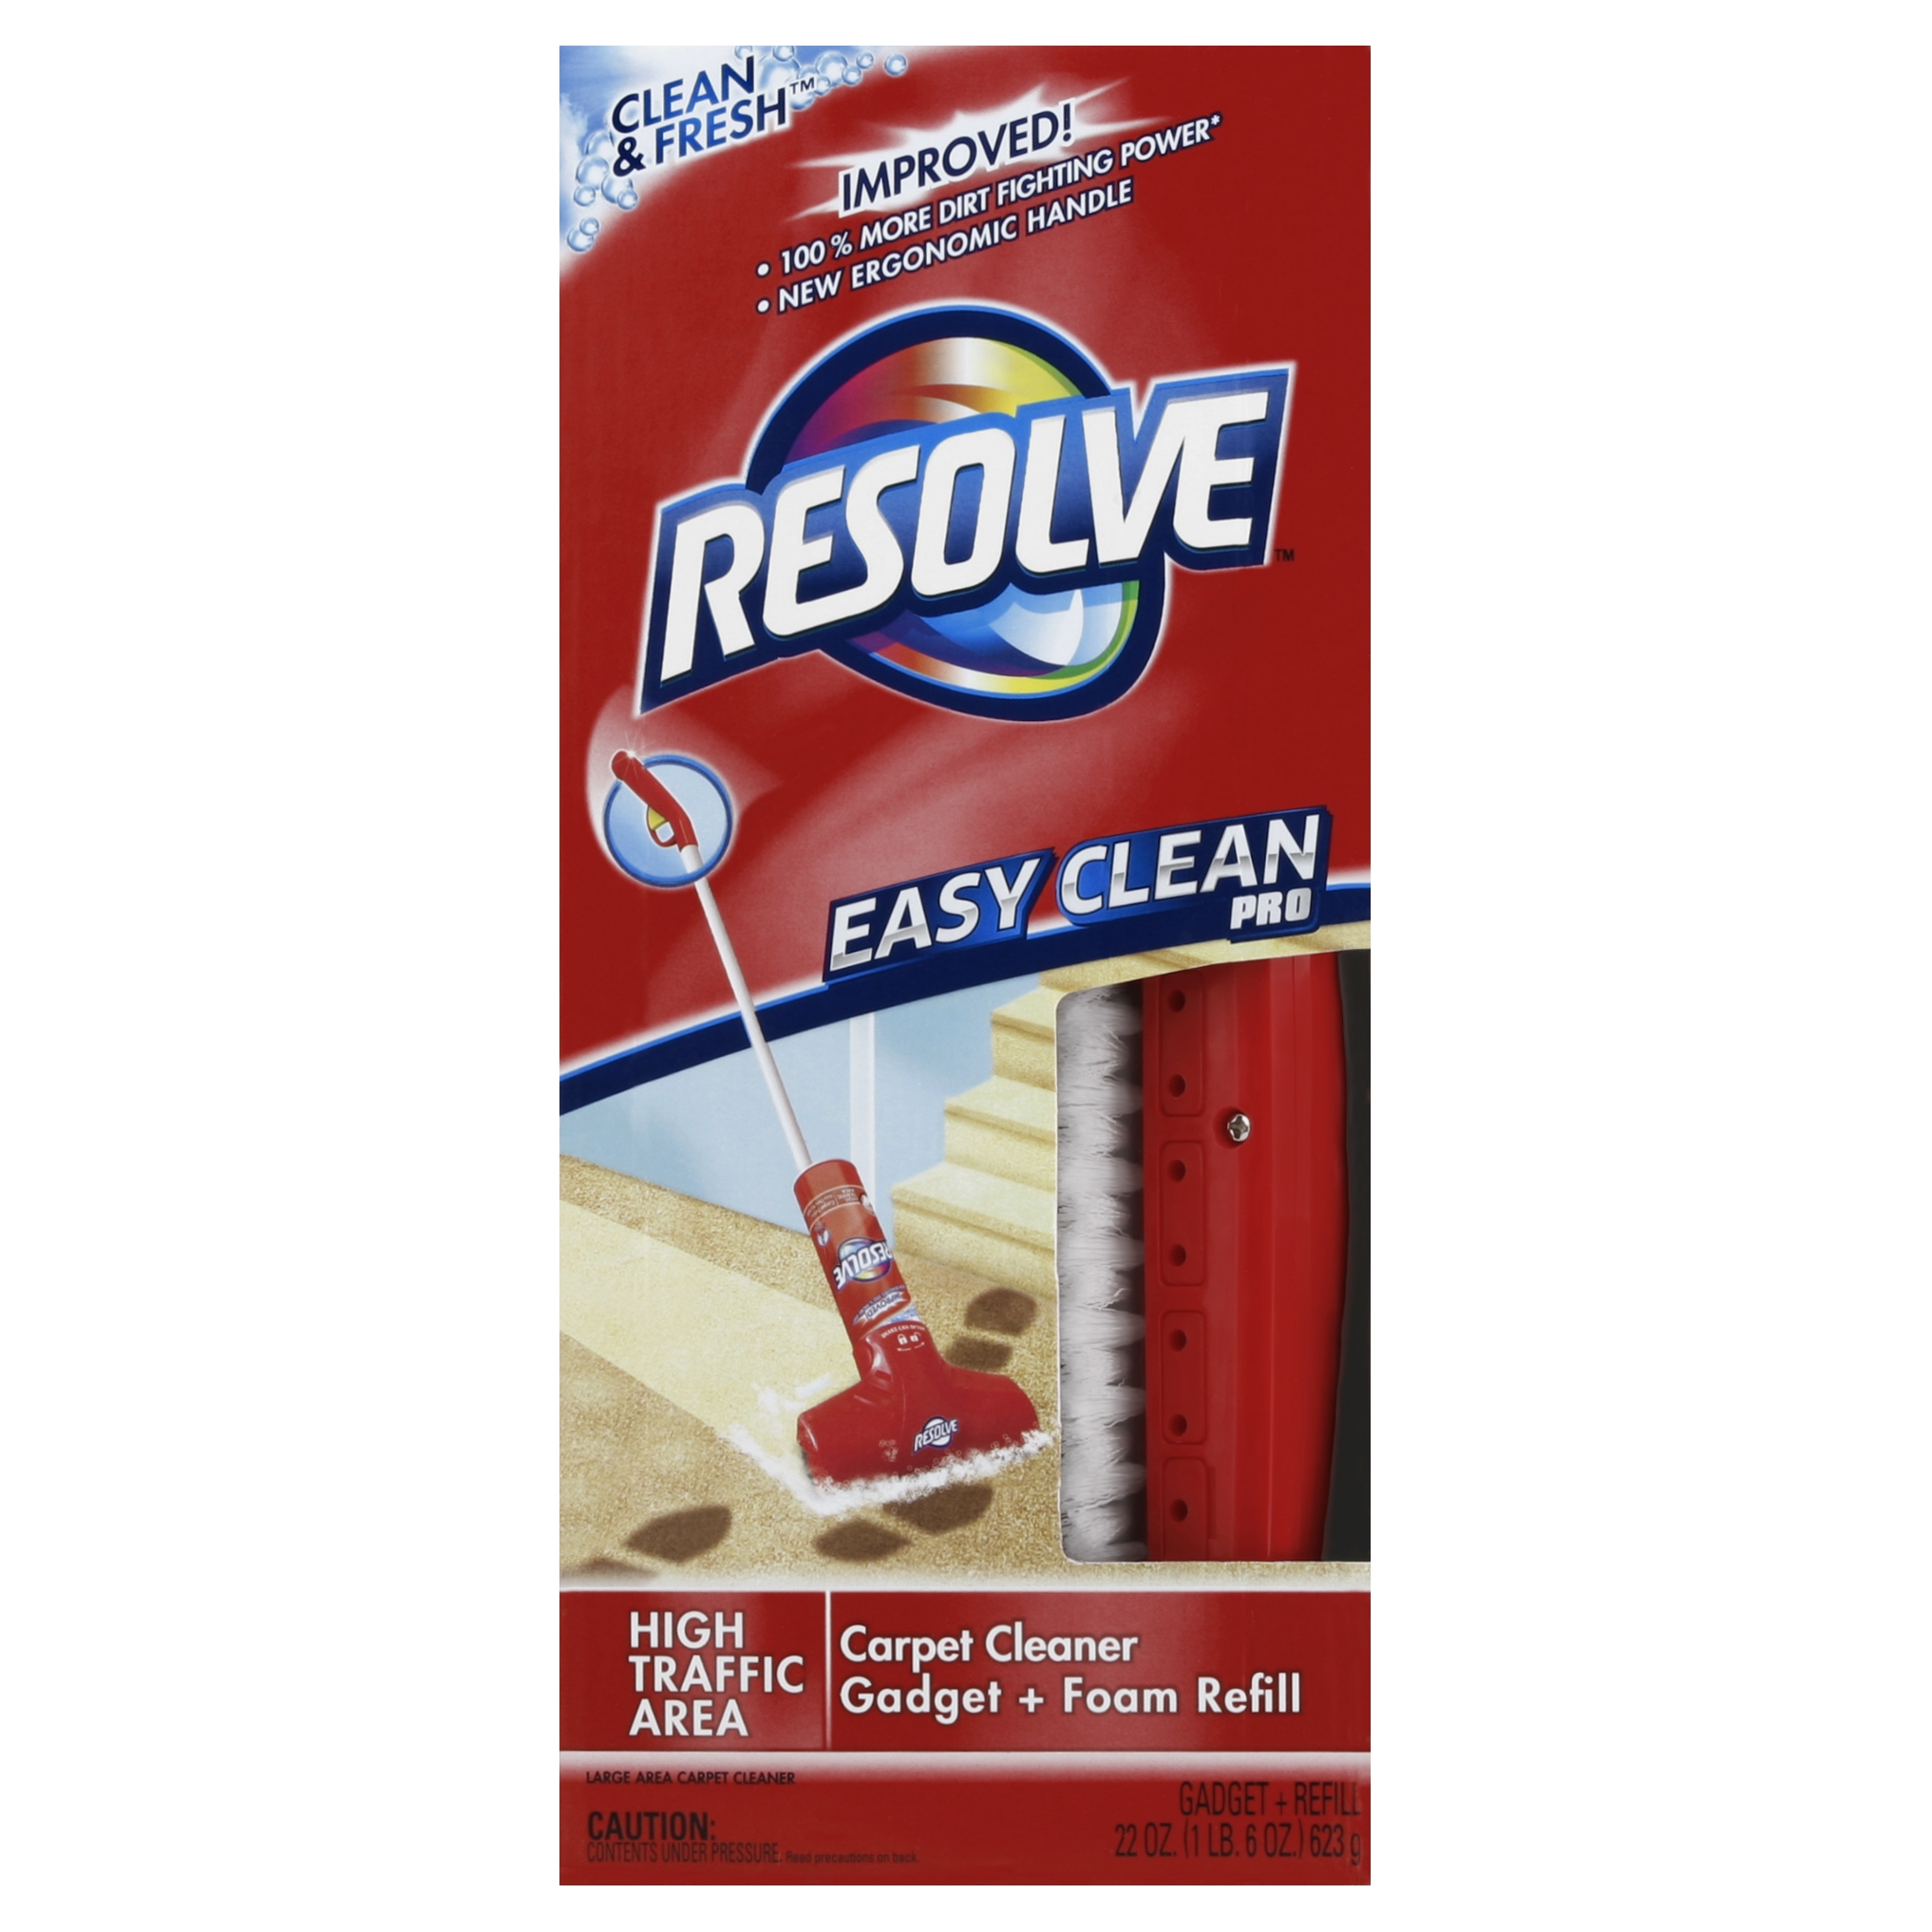 How To Use Resolve Carpet Cleaner Ideas